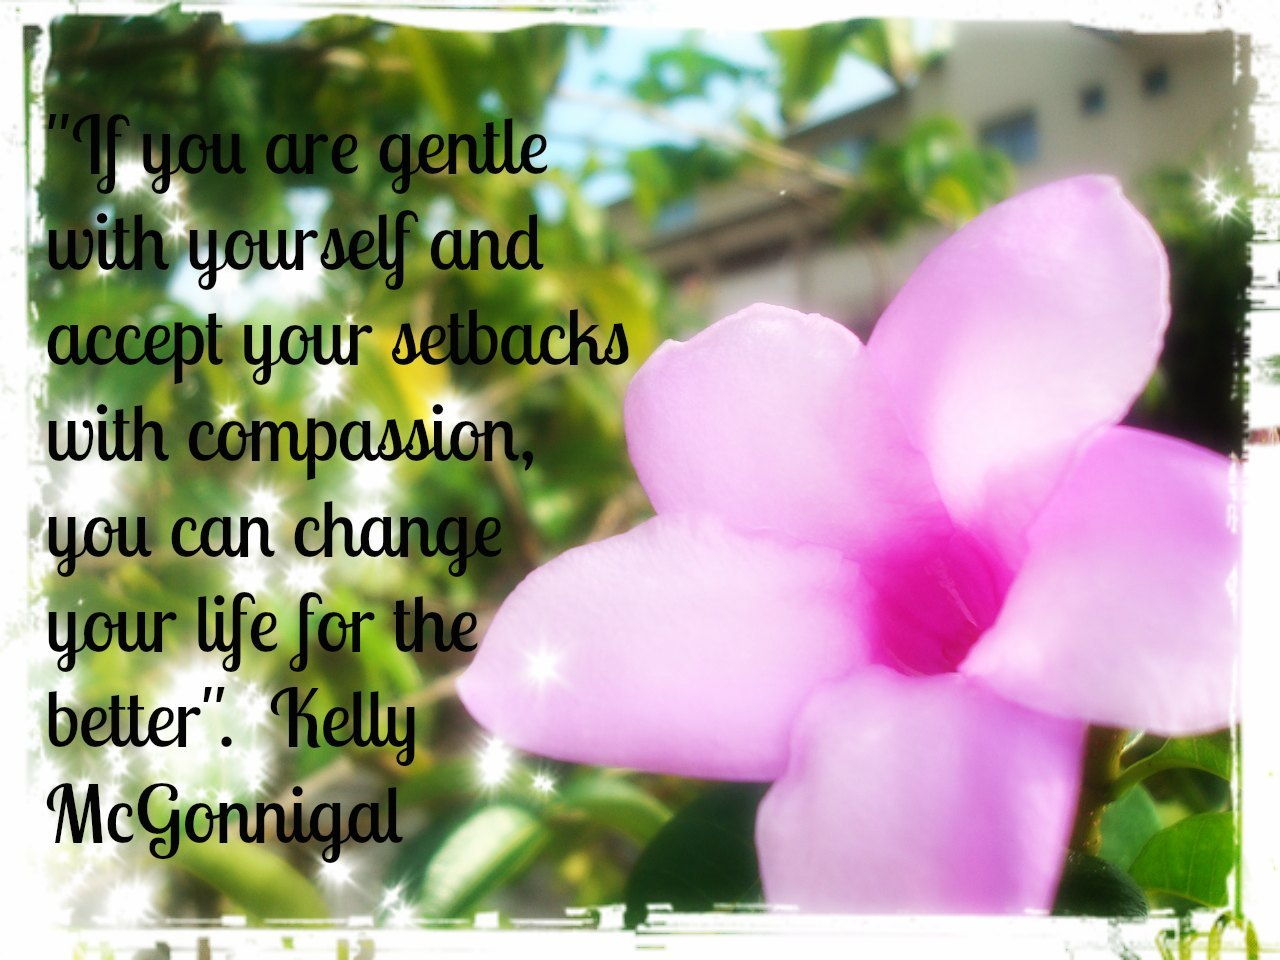 """If you are gentle with yourself and accept your setbacks with compassion, you can change your life for the better"". ~Kelly McGonigal"